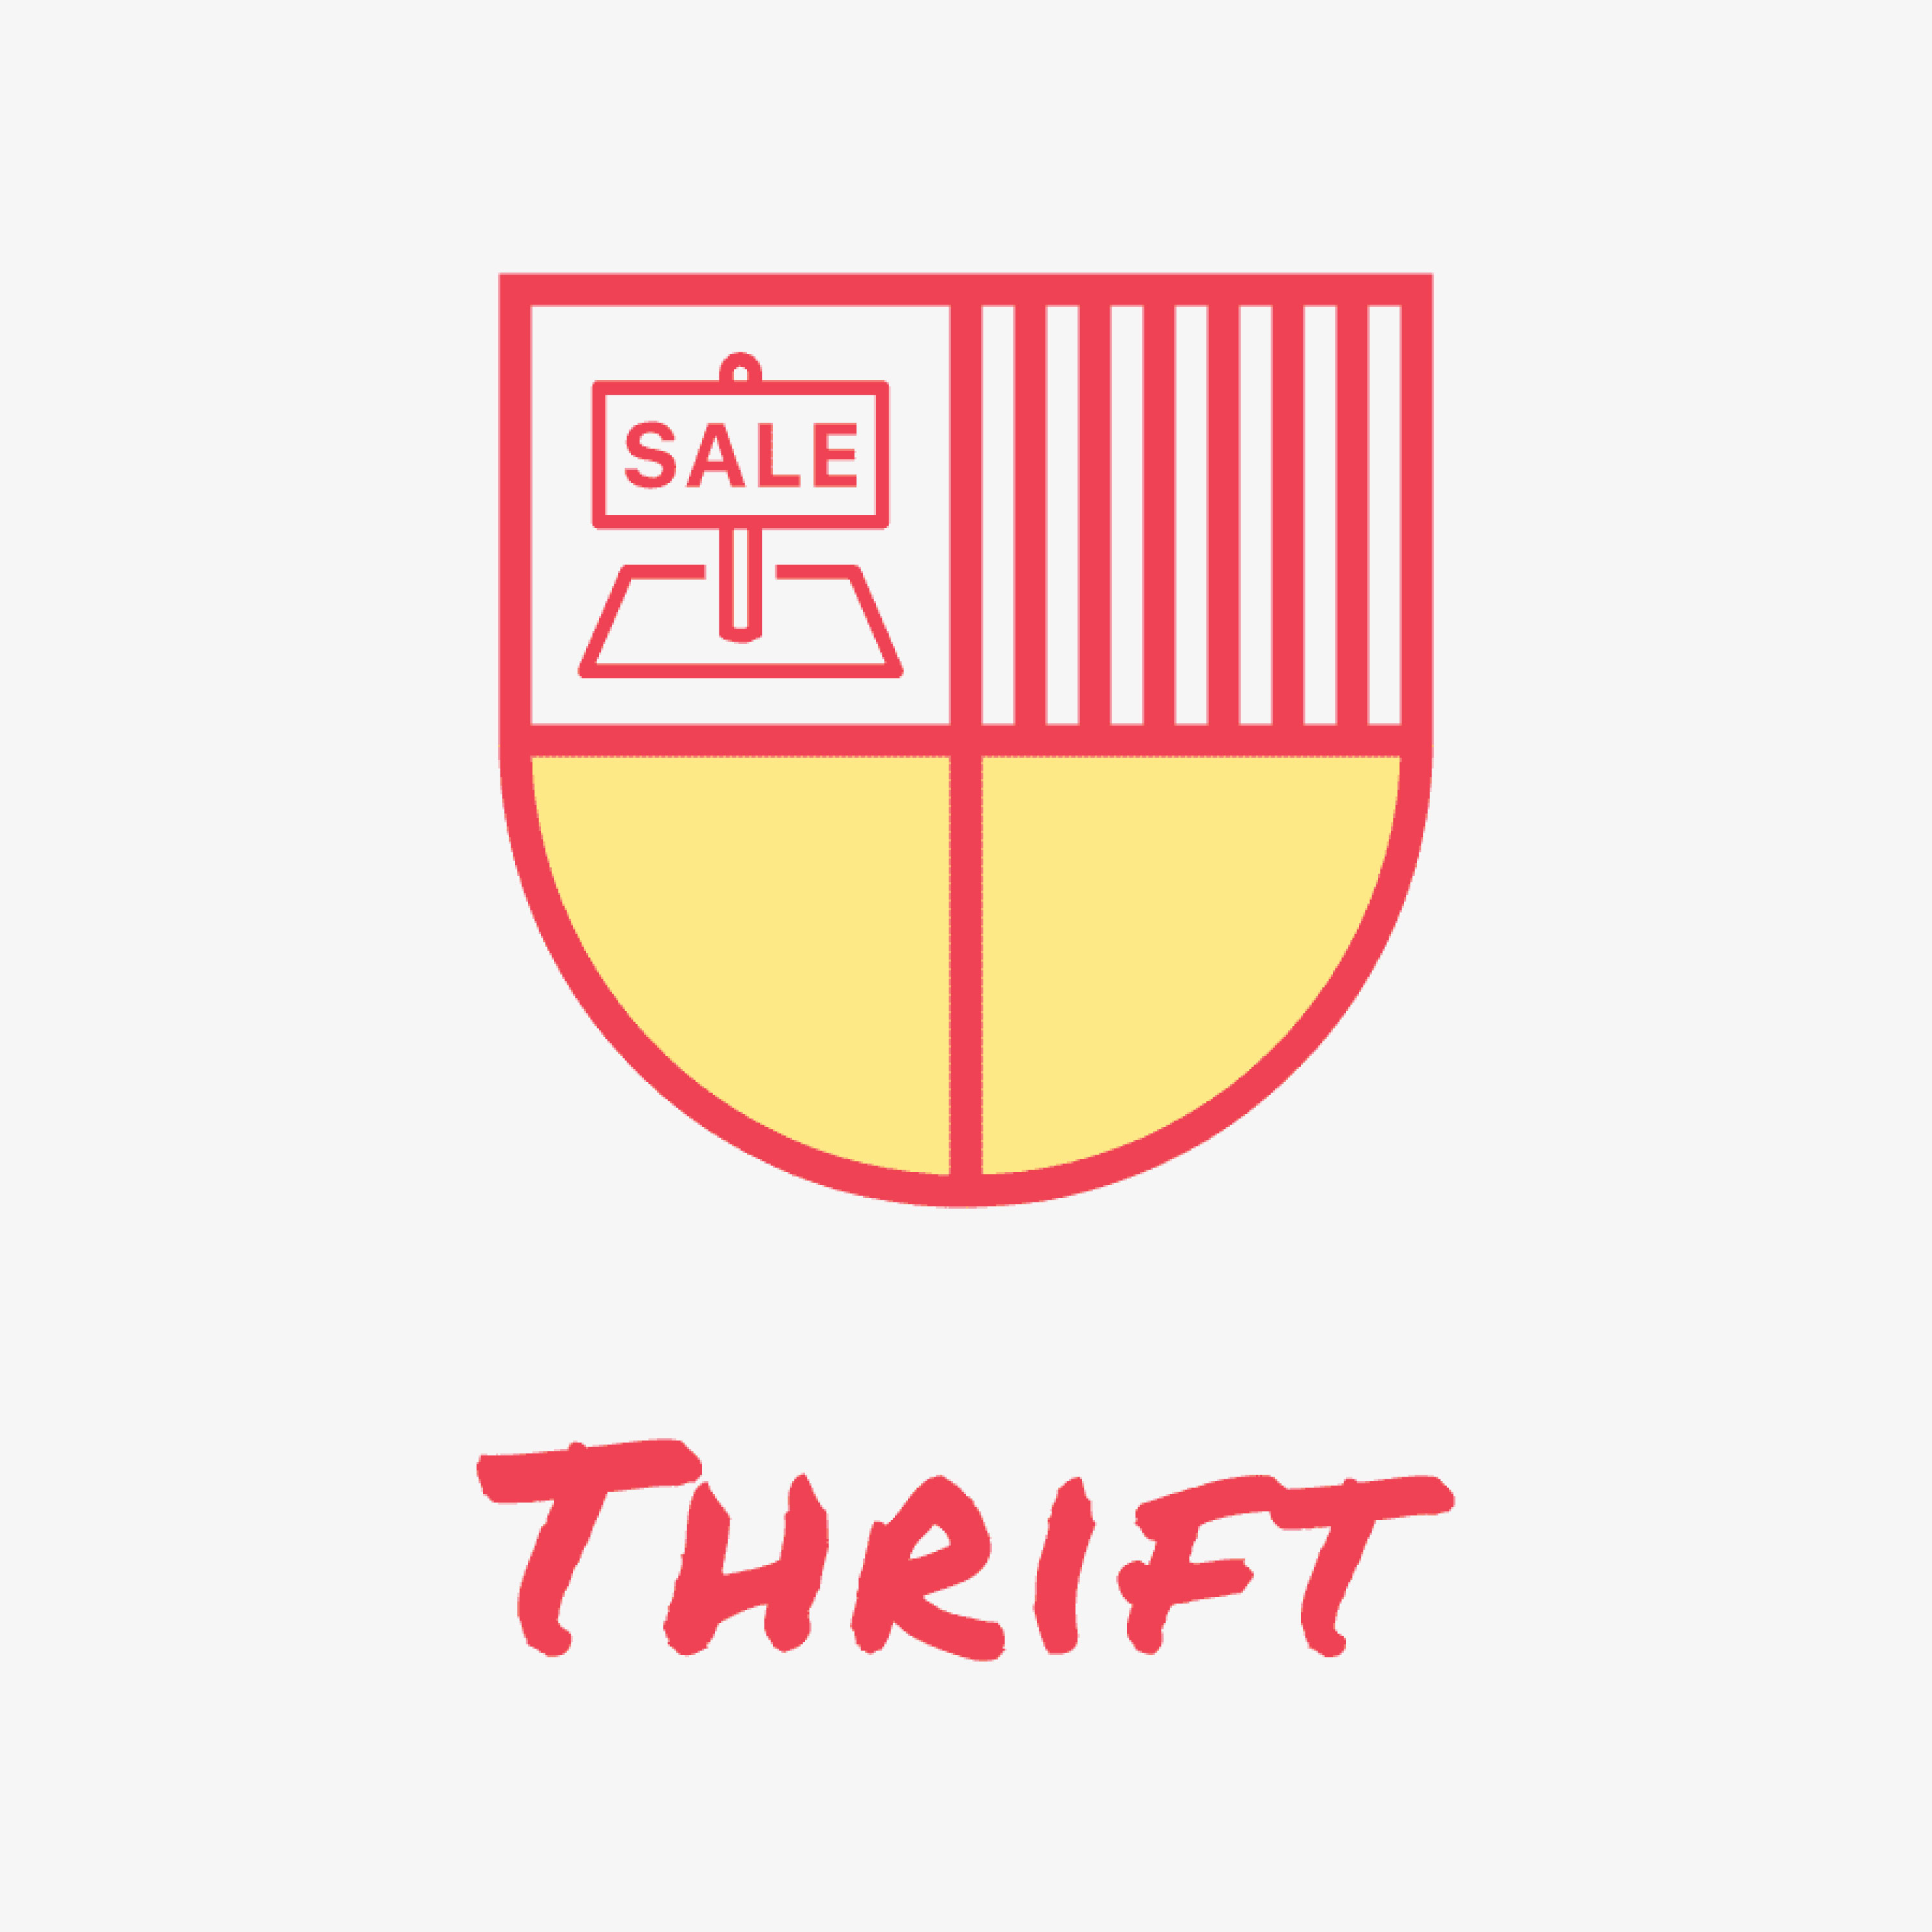 Thrift: What Your Garage Sales Says About You show image